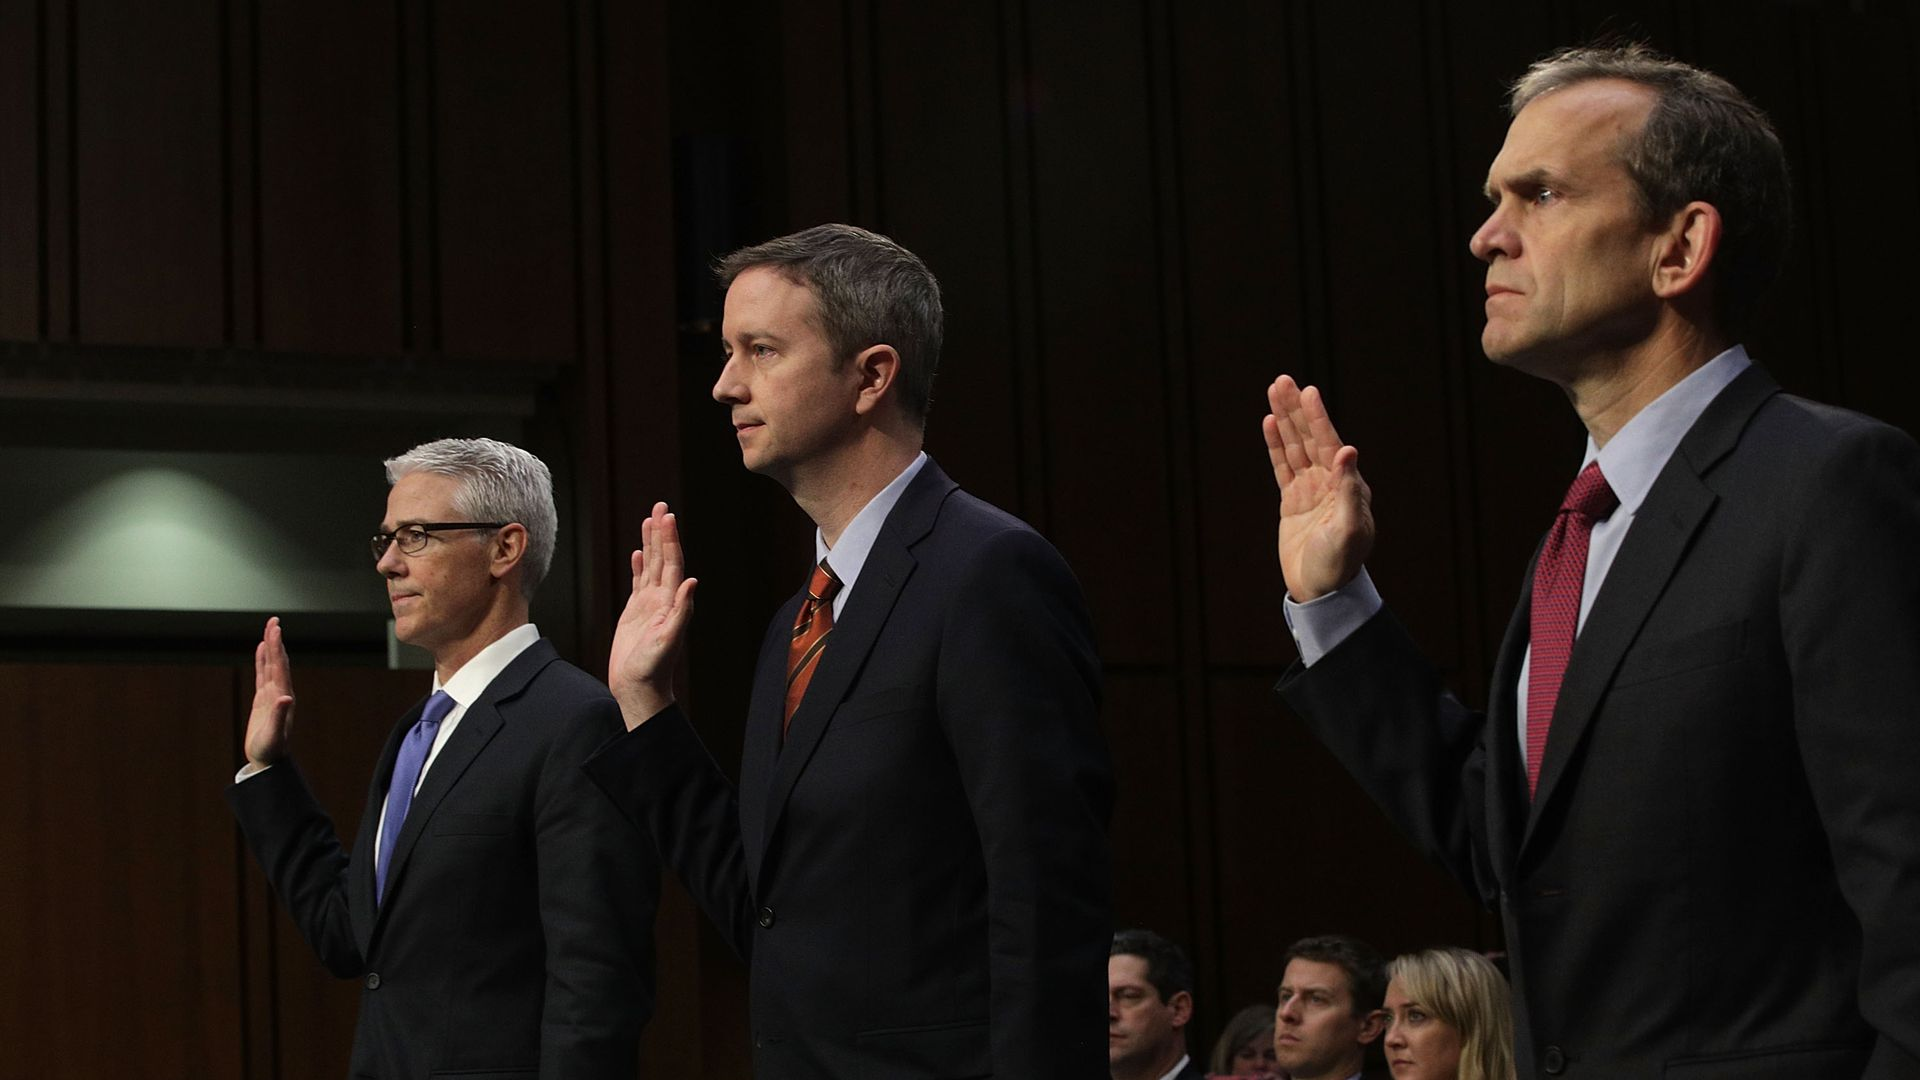 Employees of Facebook, Twitter and Alphabet are sworn in to testify before a congressional hearing